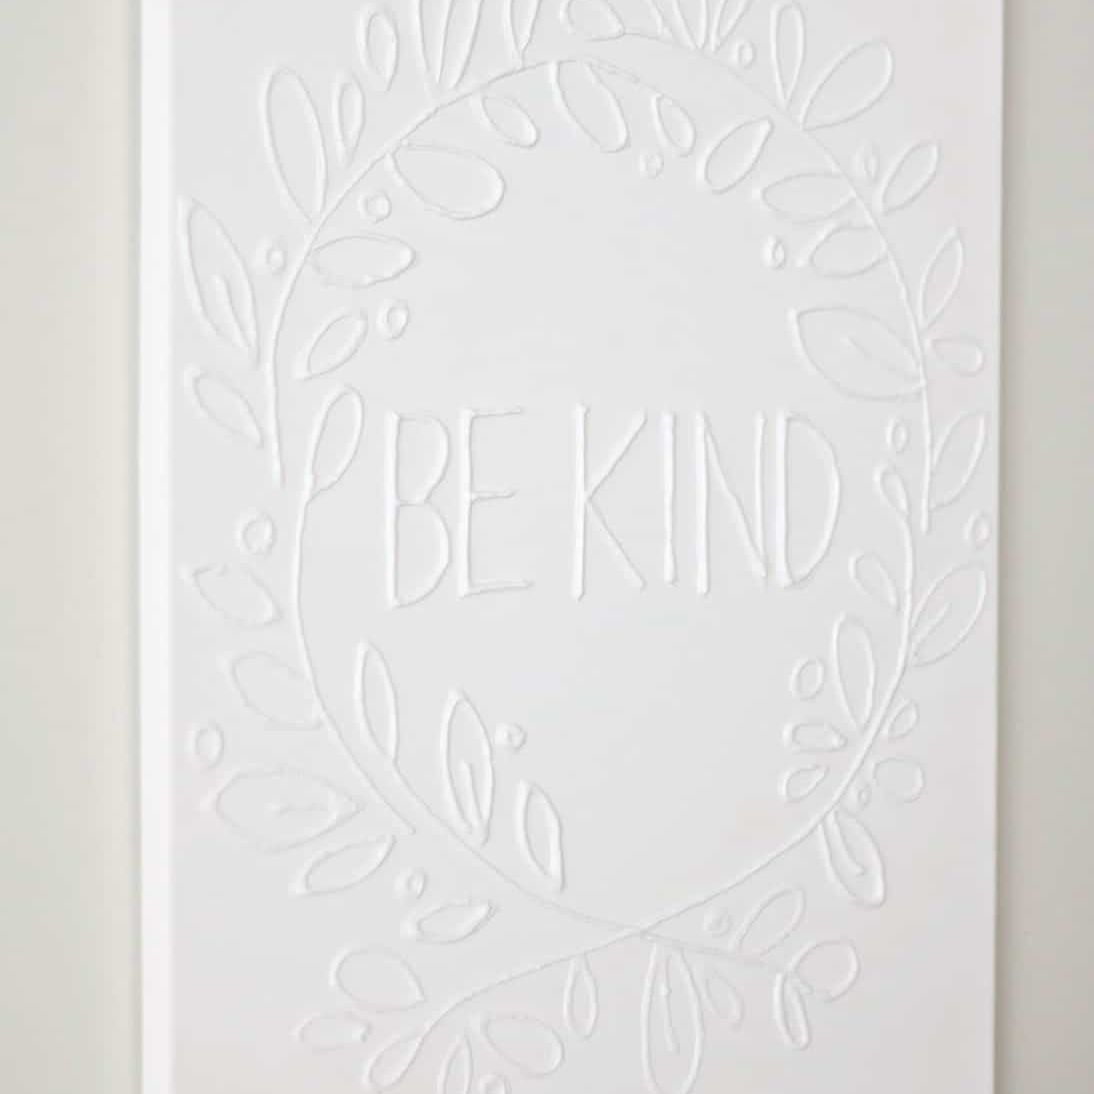 White wall art made with glue.